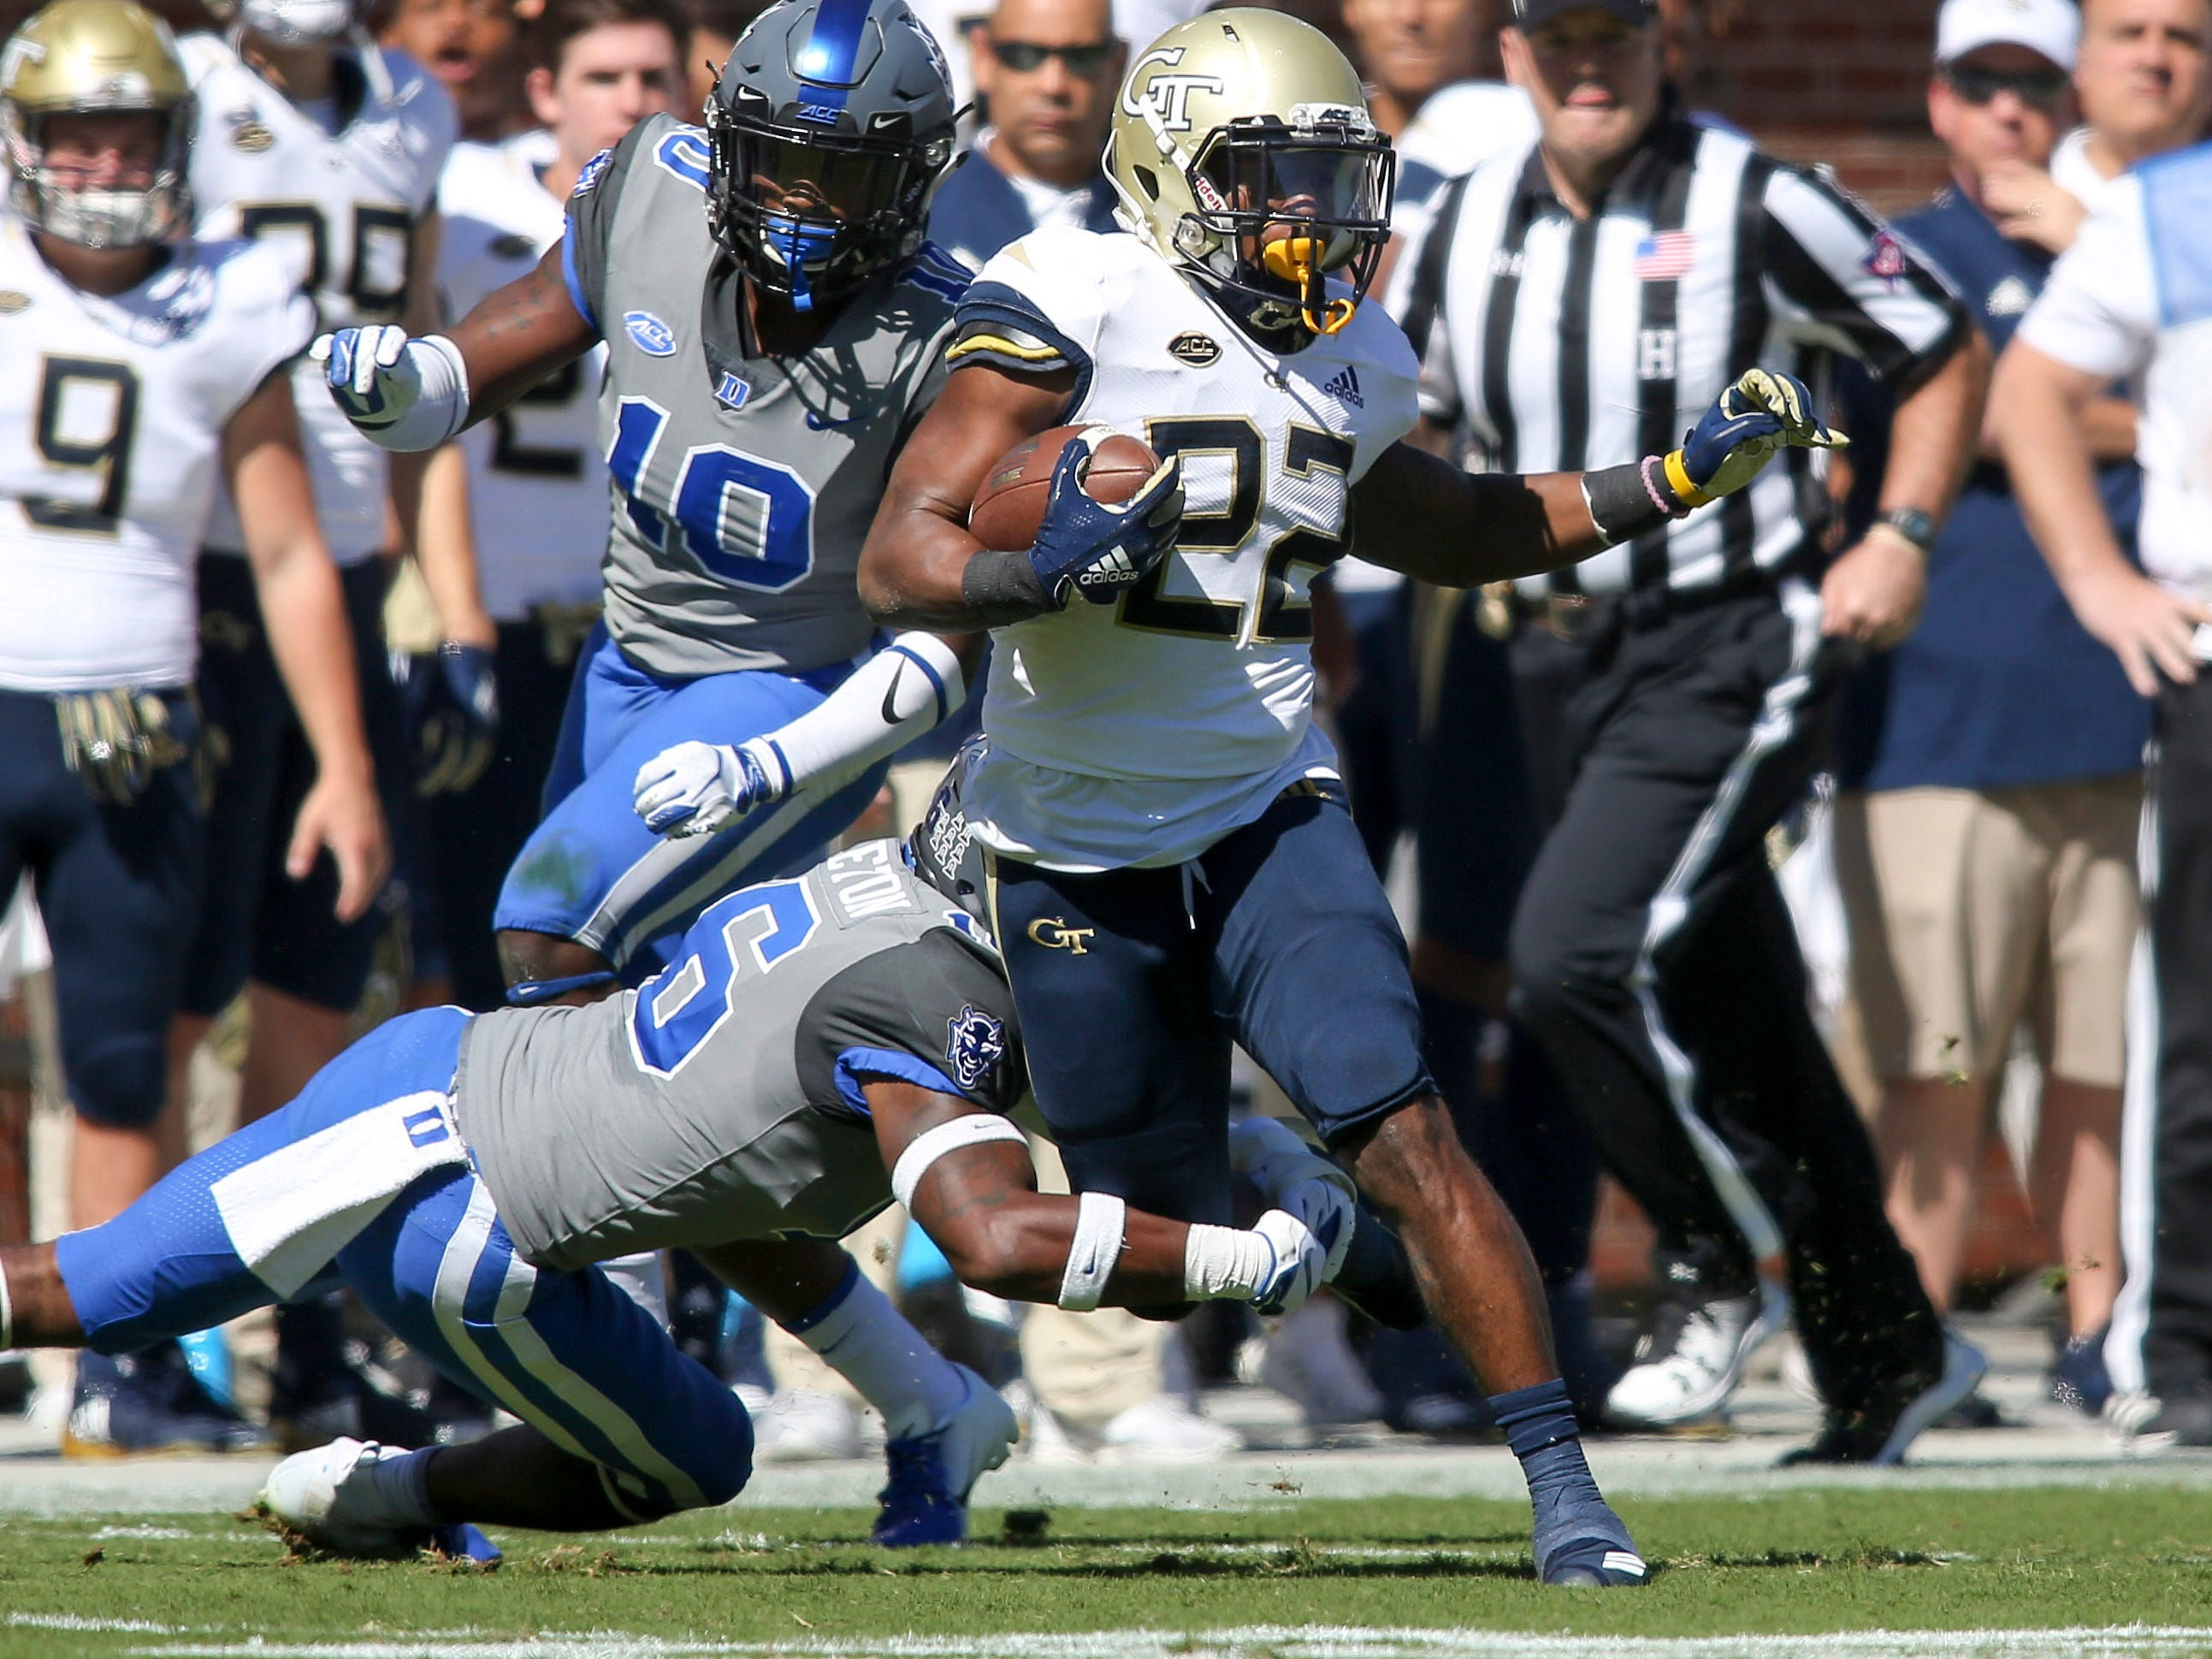 Georgia Tech running back Clinton Lynch runs the ball against Duke during in the first quarter at Bobby Dodd Stadium.